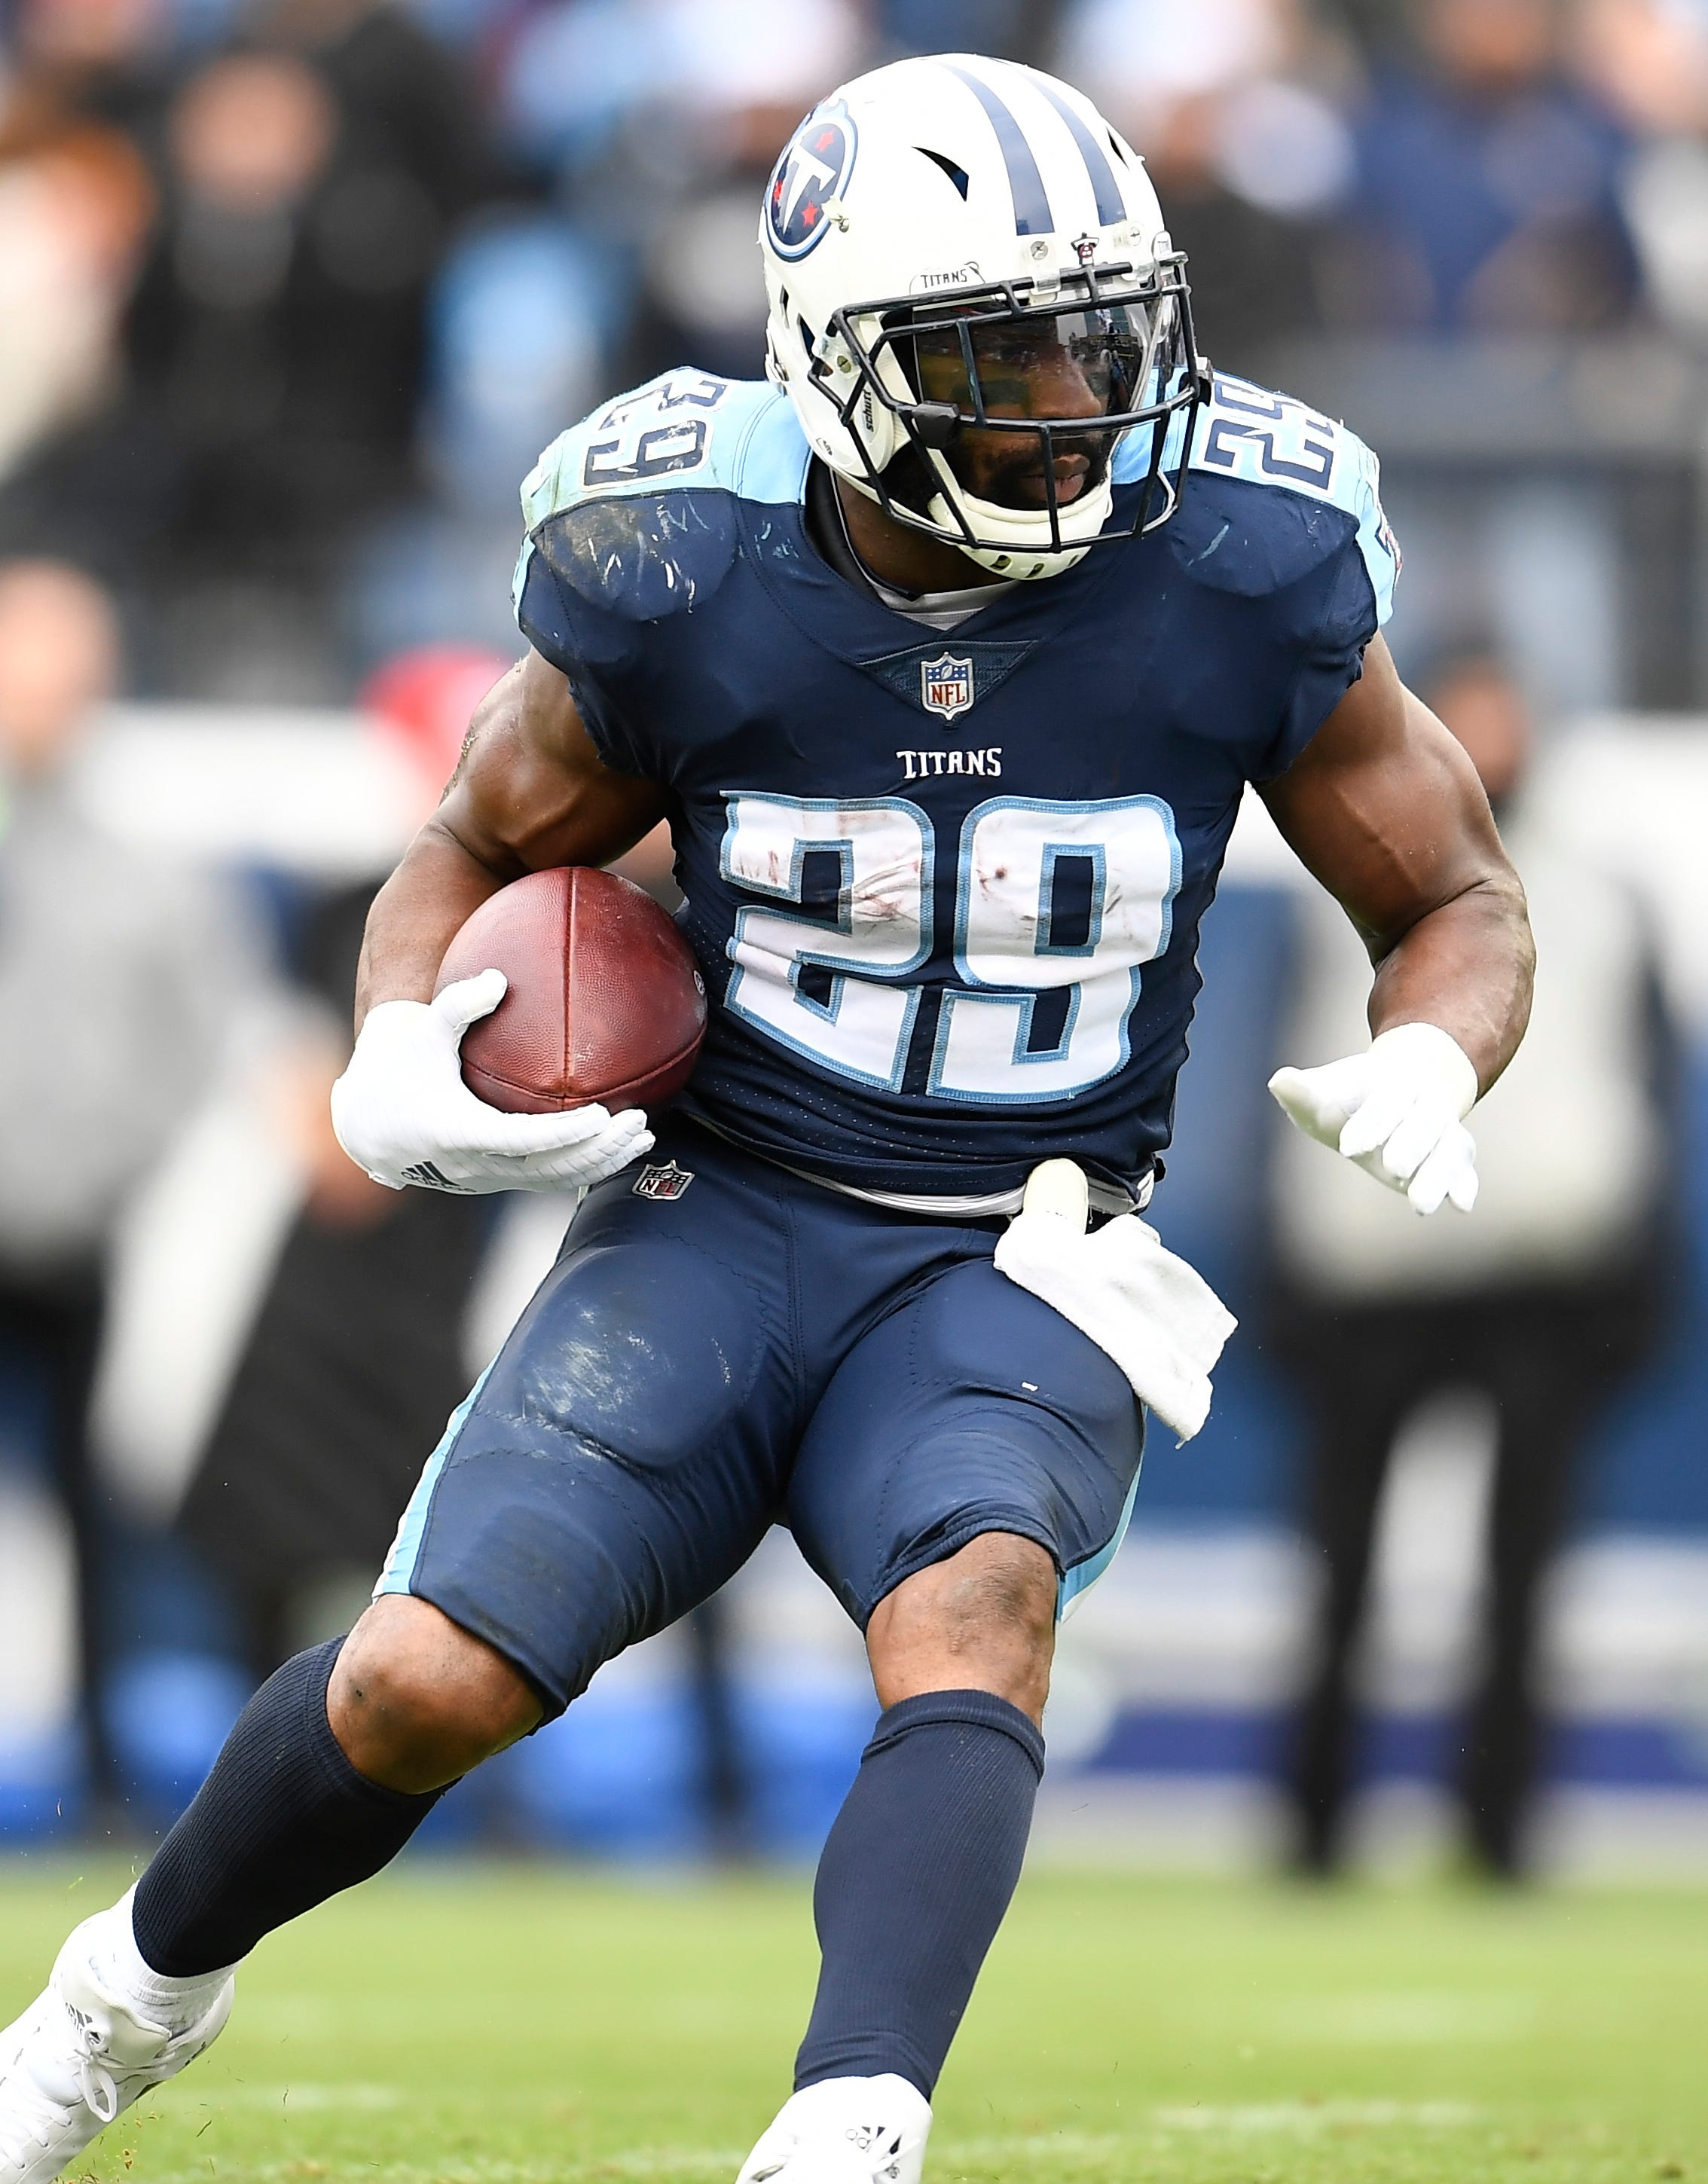 Titans' DeMarco Murray to be released; Derrick Henry expected to take over as lead running back